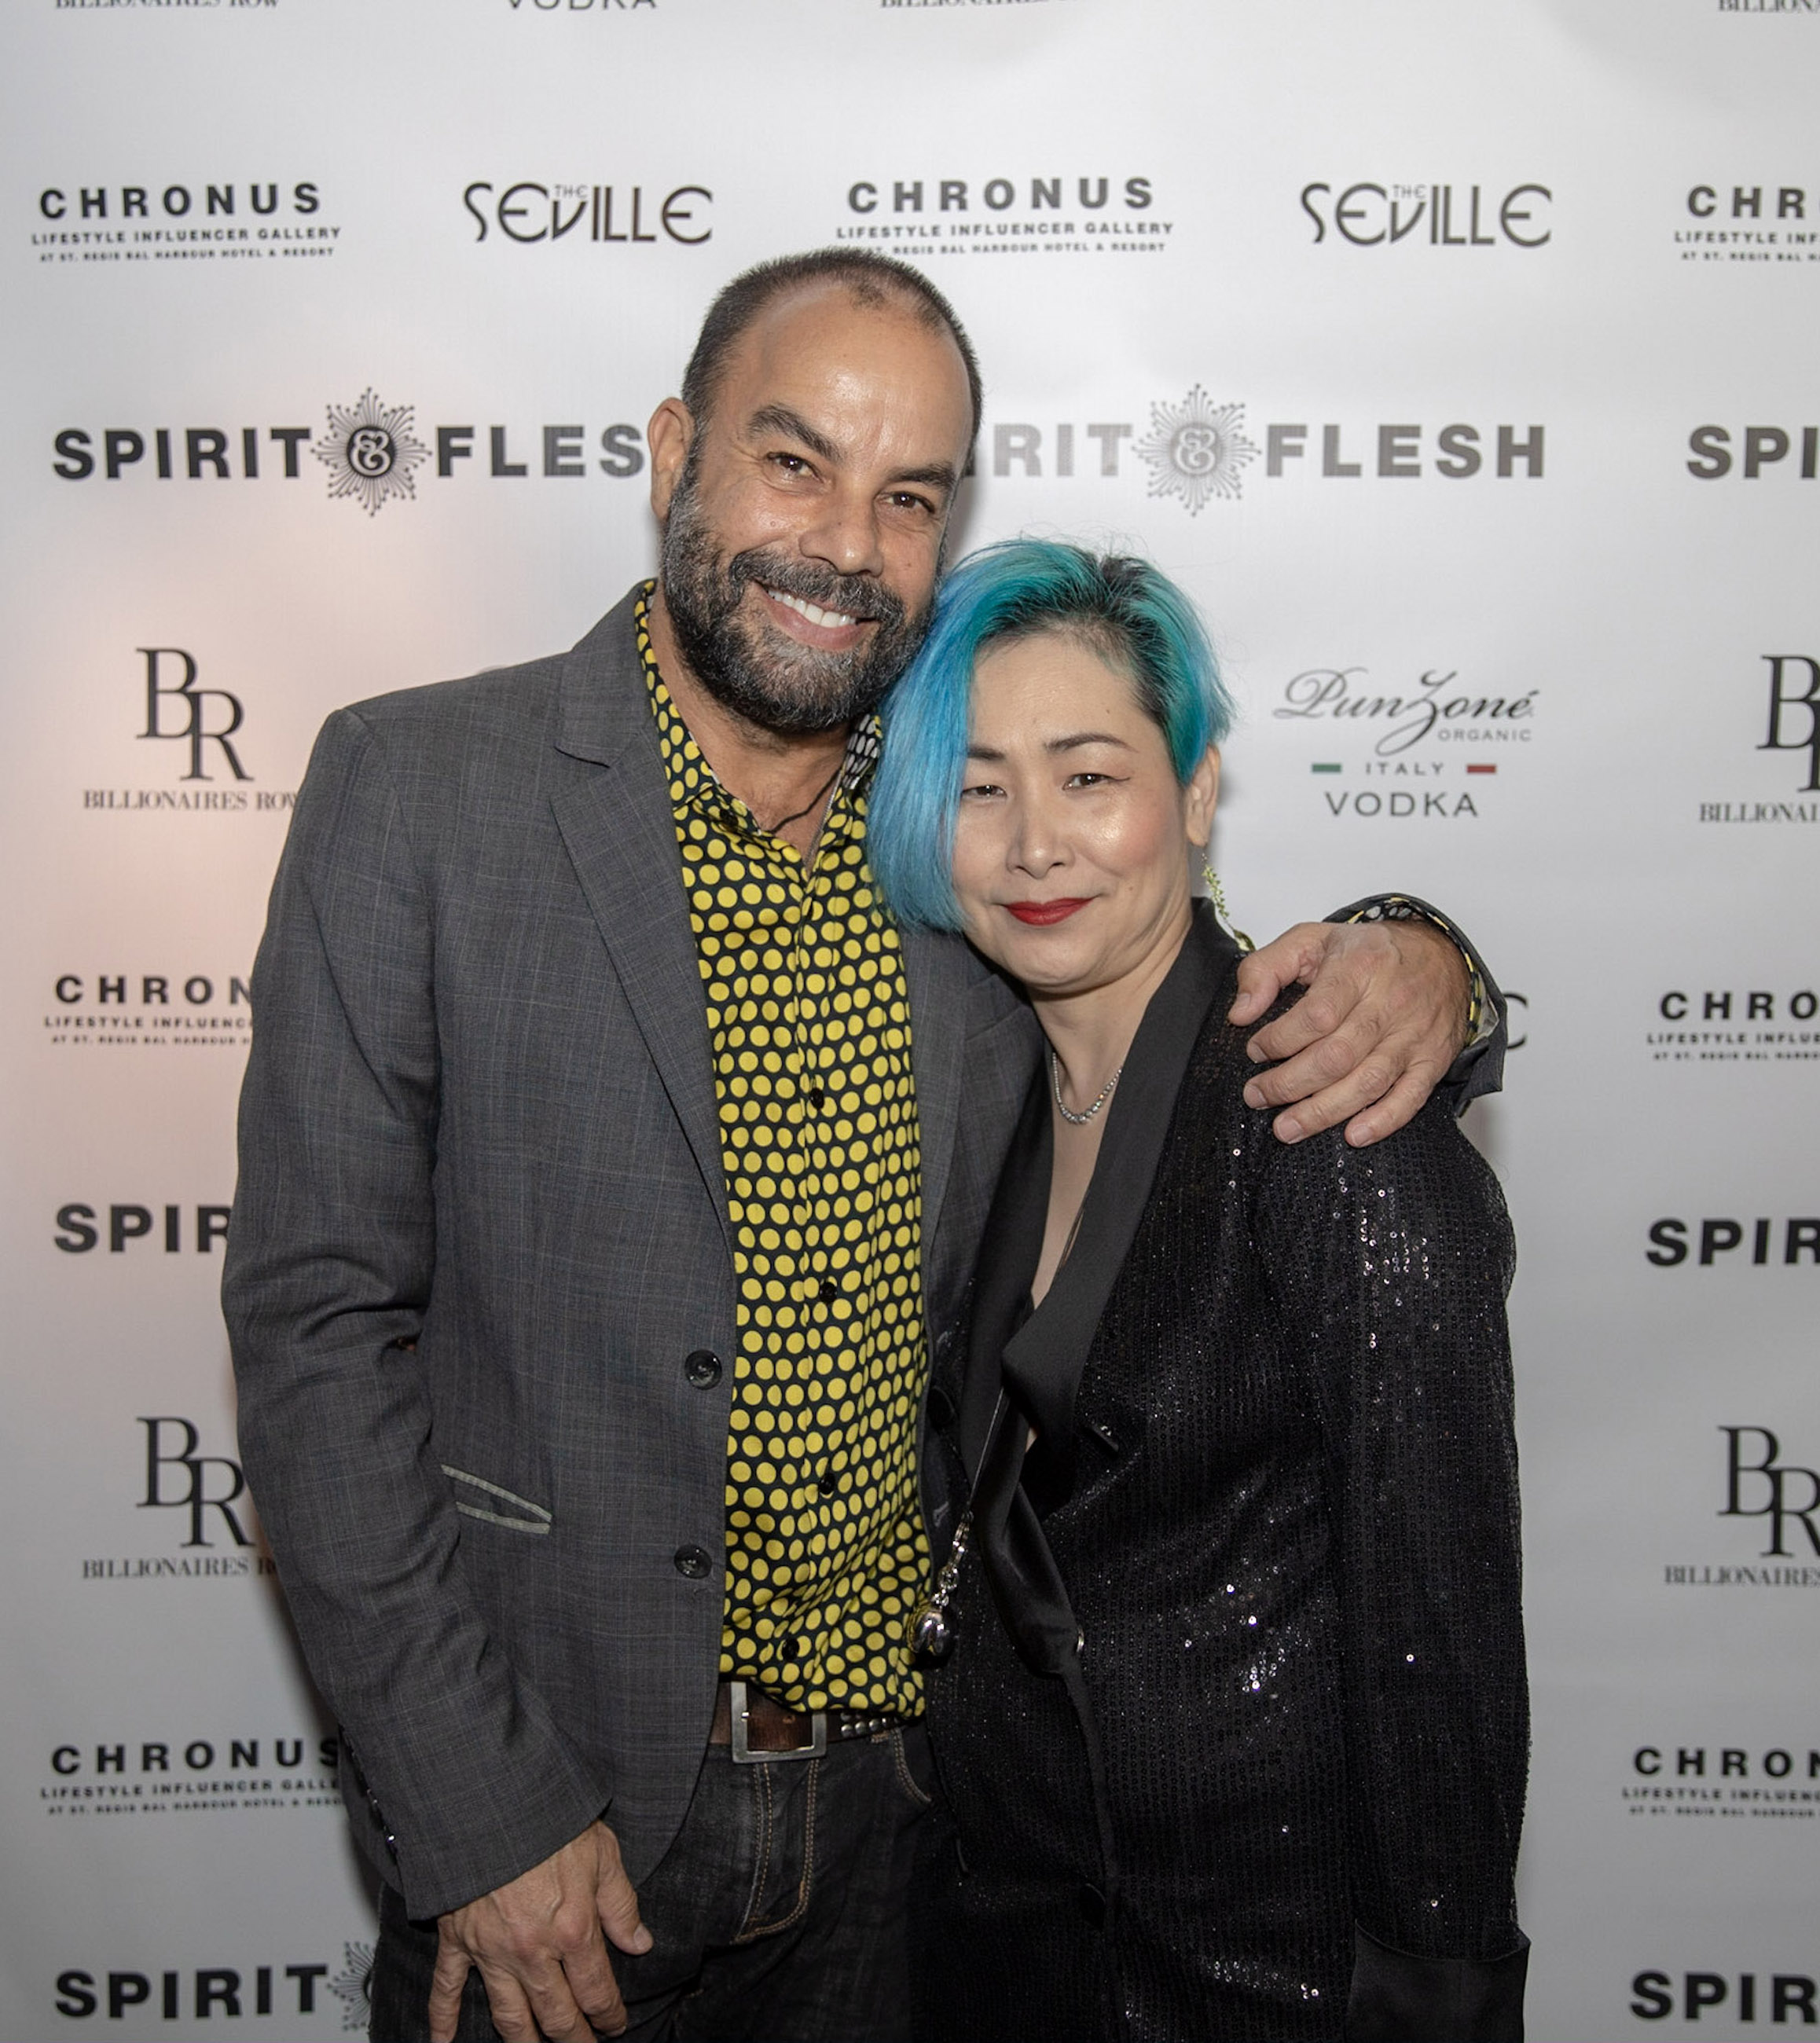 Spirit & Flesh Magazine Jussie Smollett cover event, Antonio Navas & Yachi Gault by Kenneth de la Torre